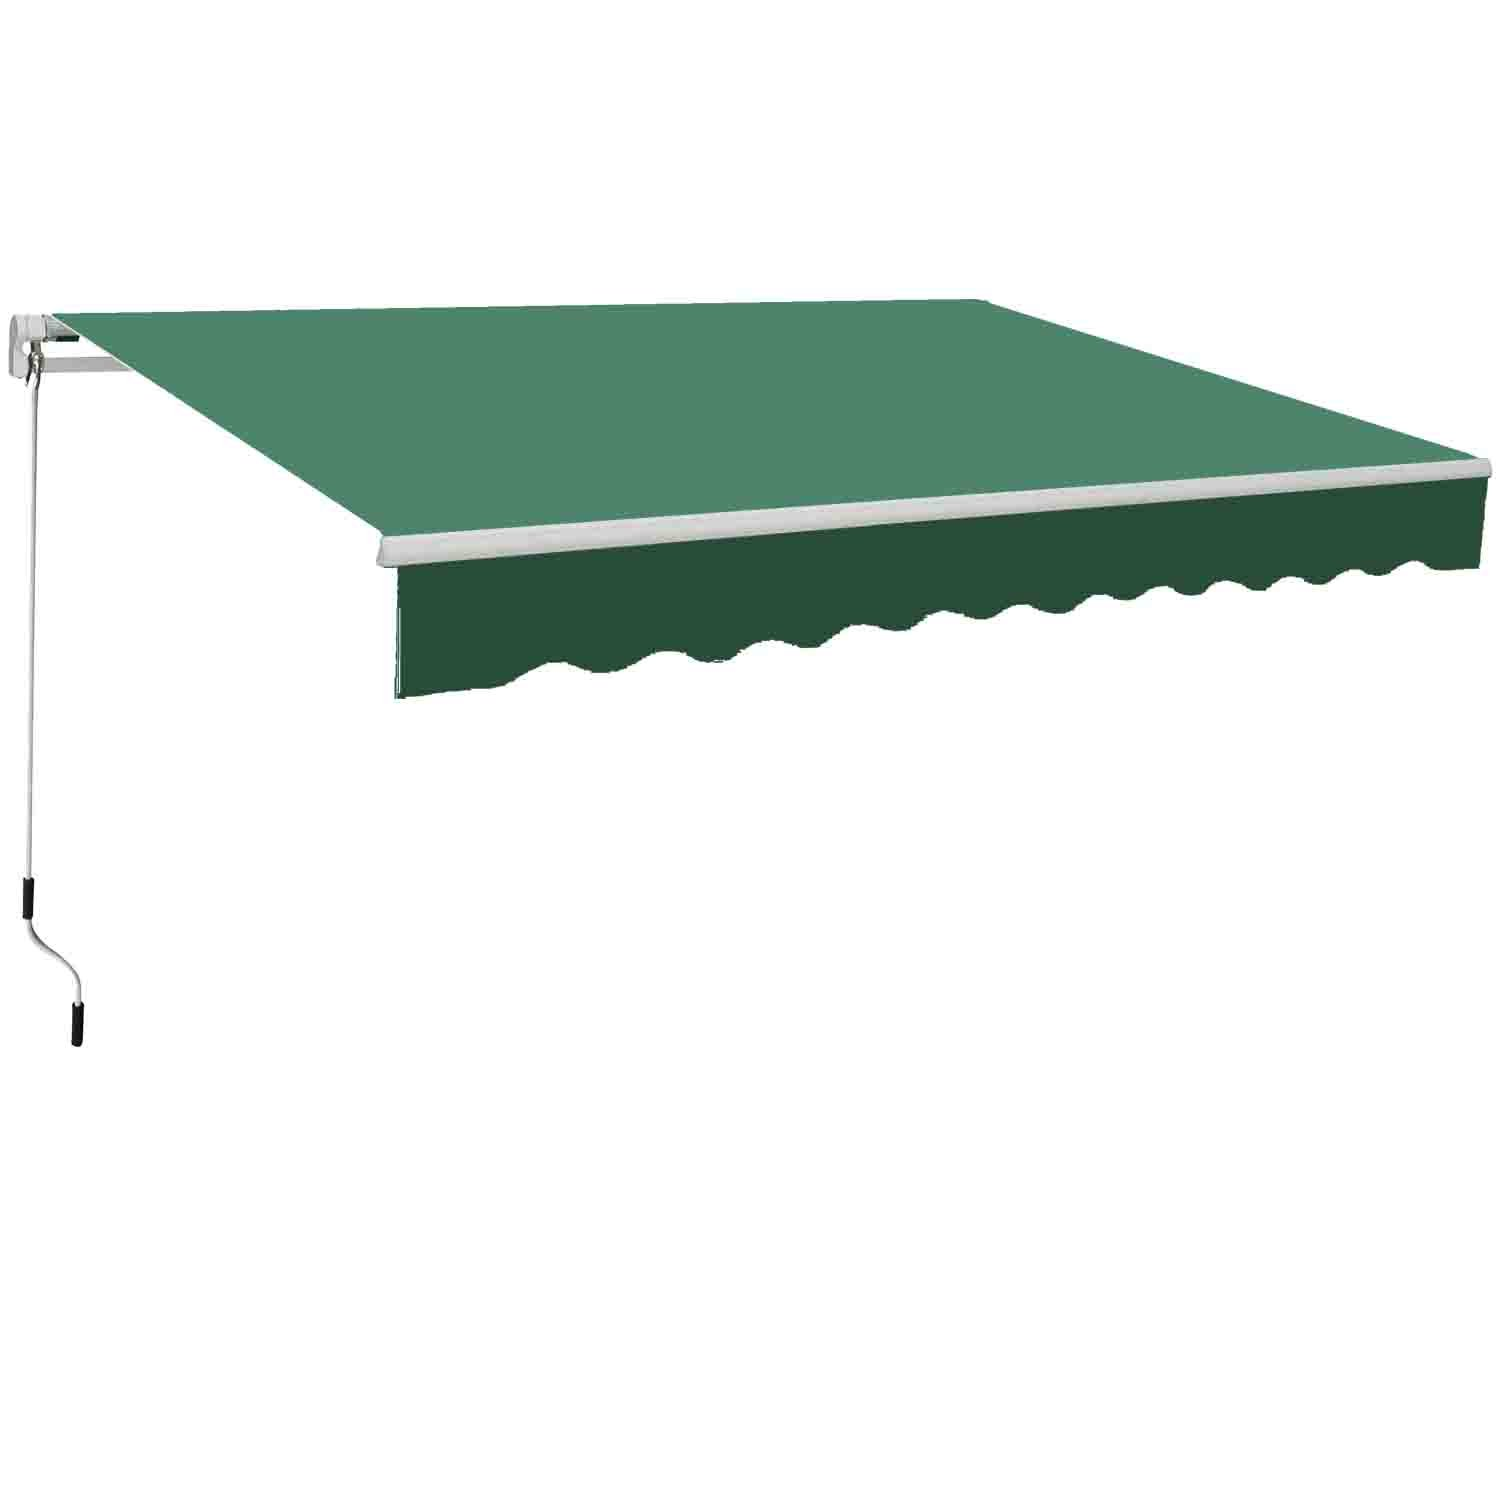 Greenbay 4x3m Garden Awning Replacement Fabric Top Cover Front Frill Green Manufactured for Greenbay